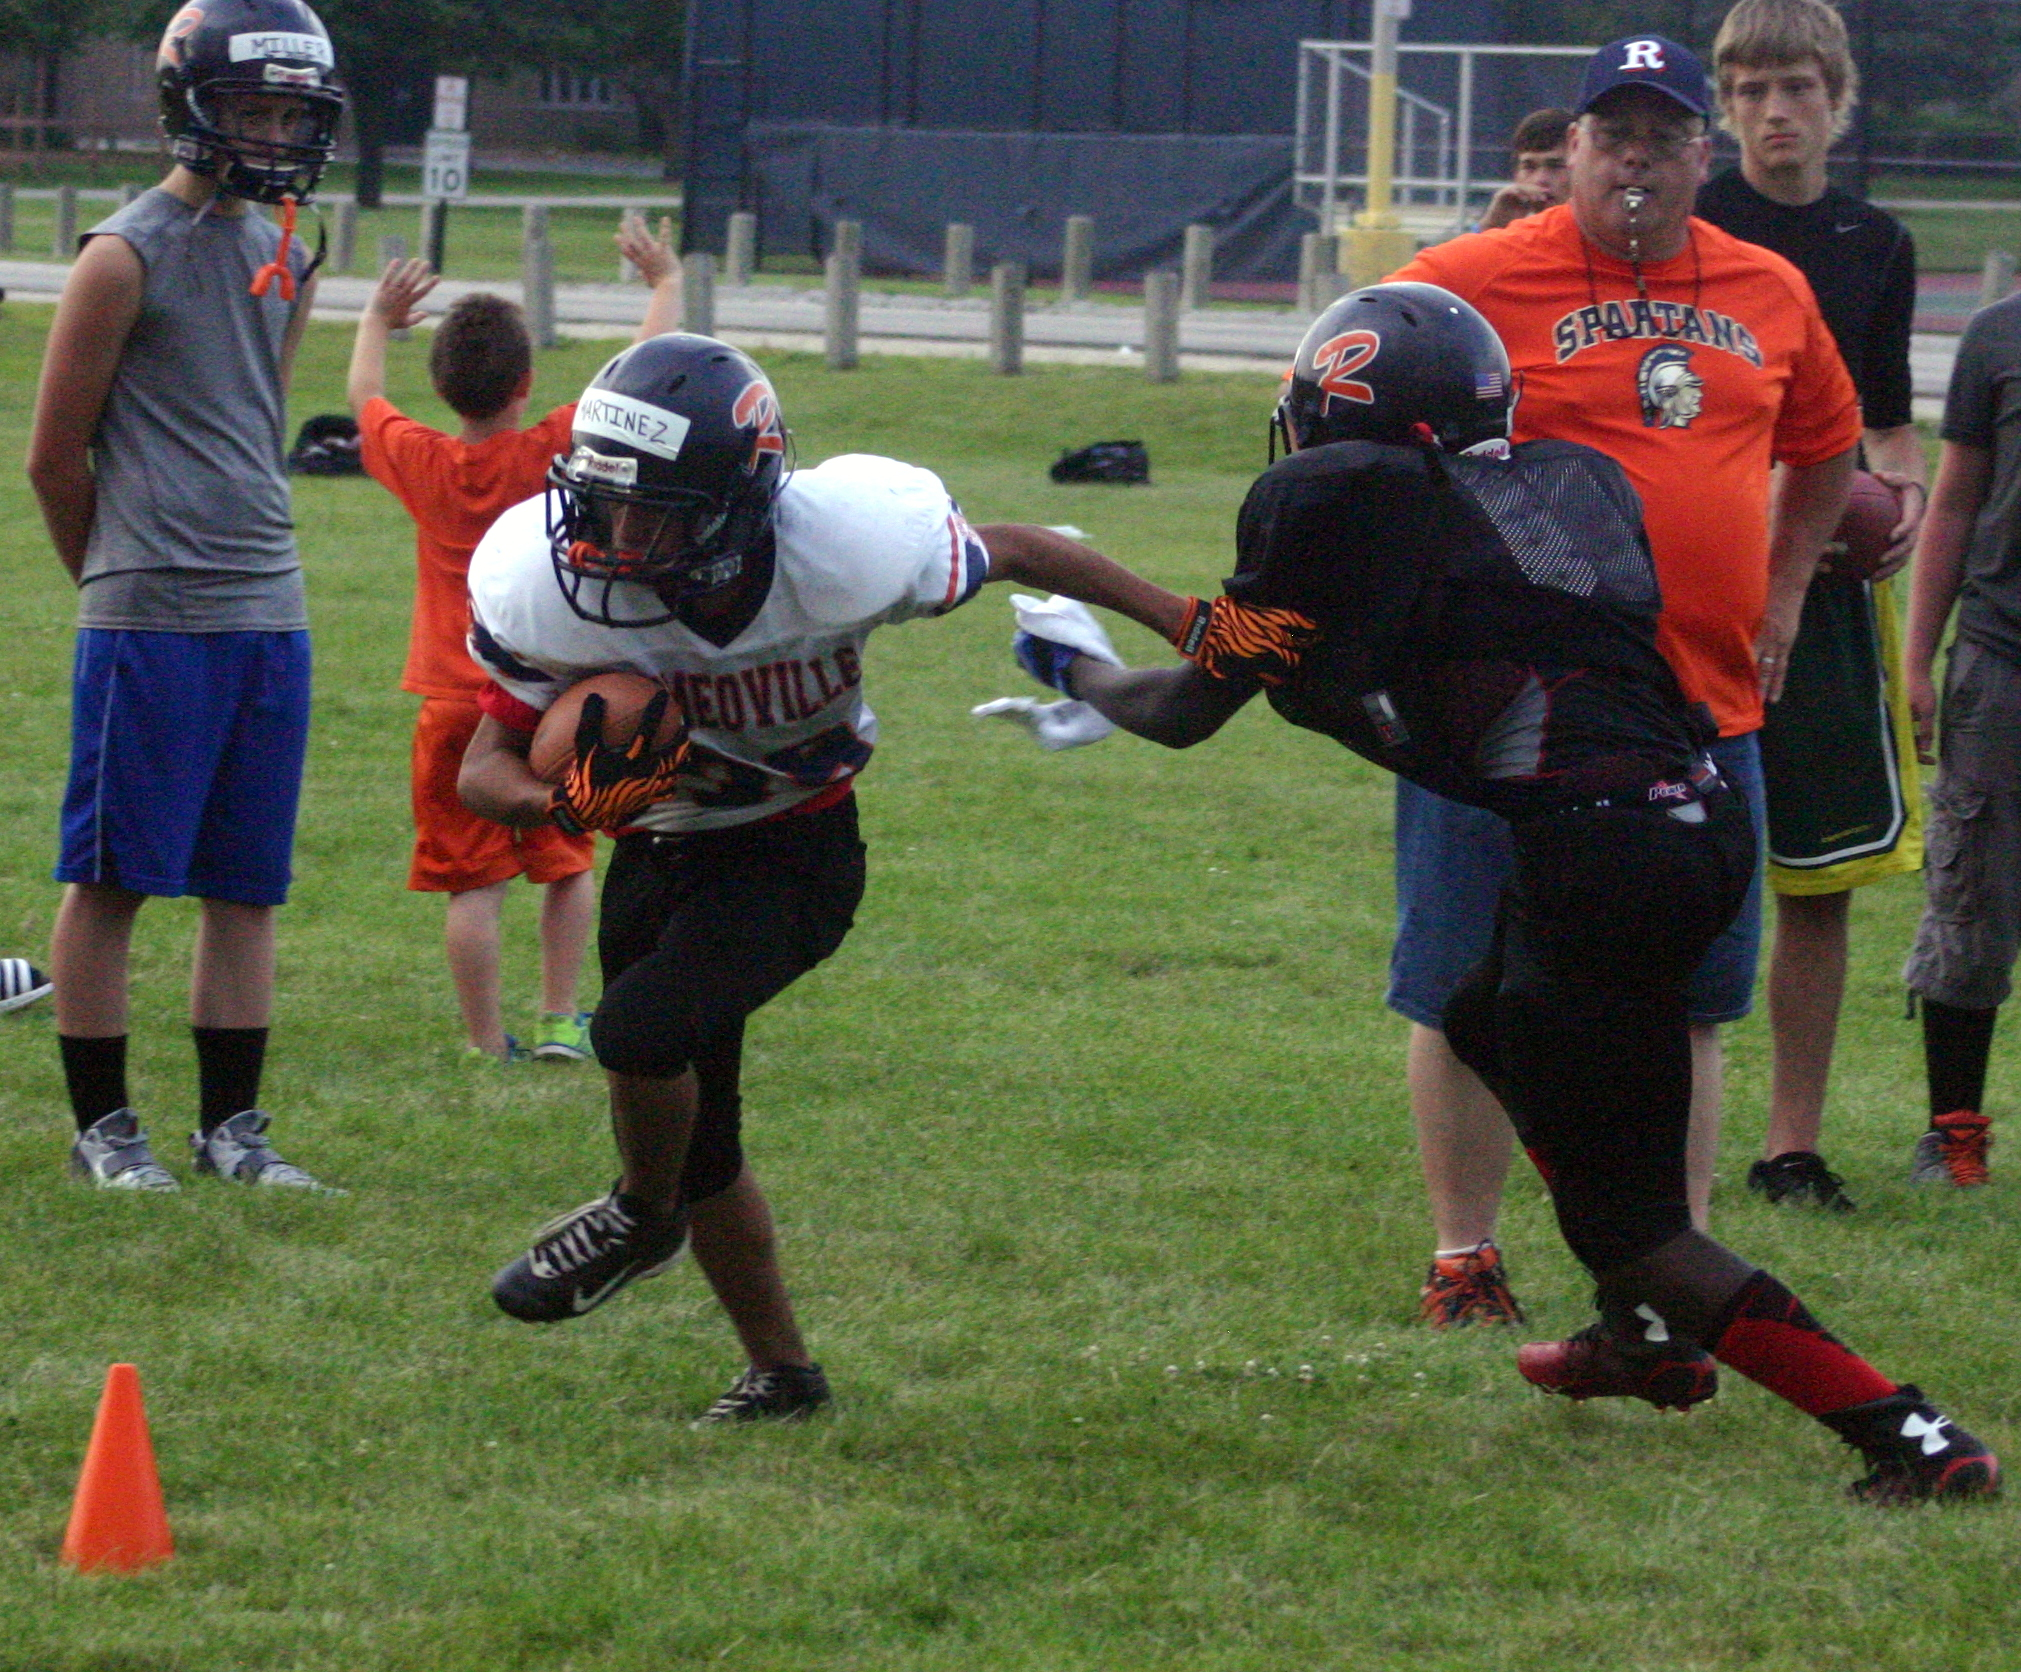 Spartans Youth Program Gears Up  The Times Weekly